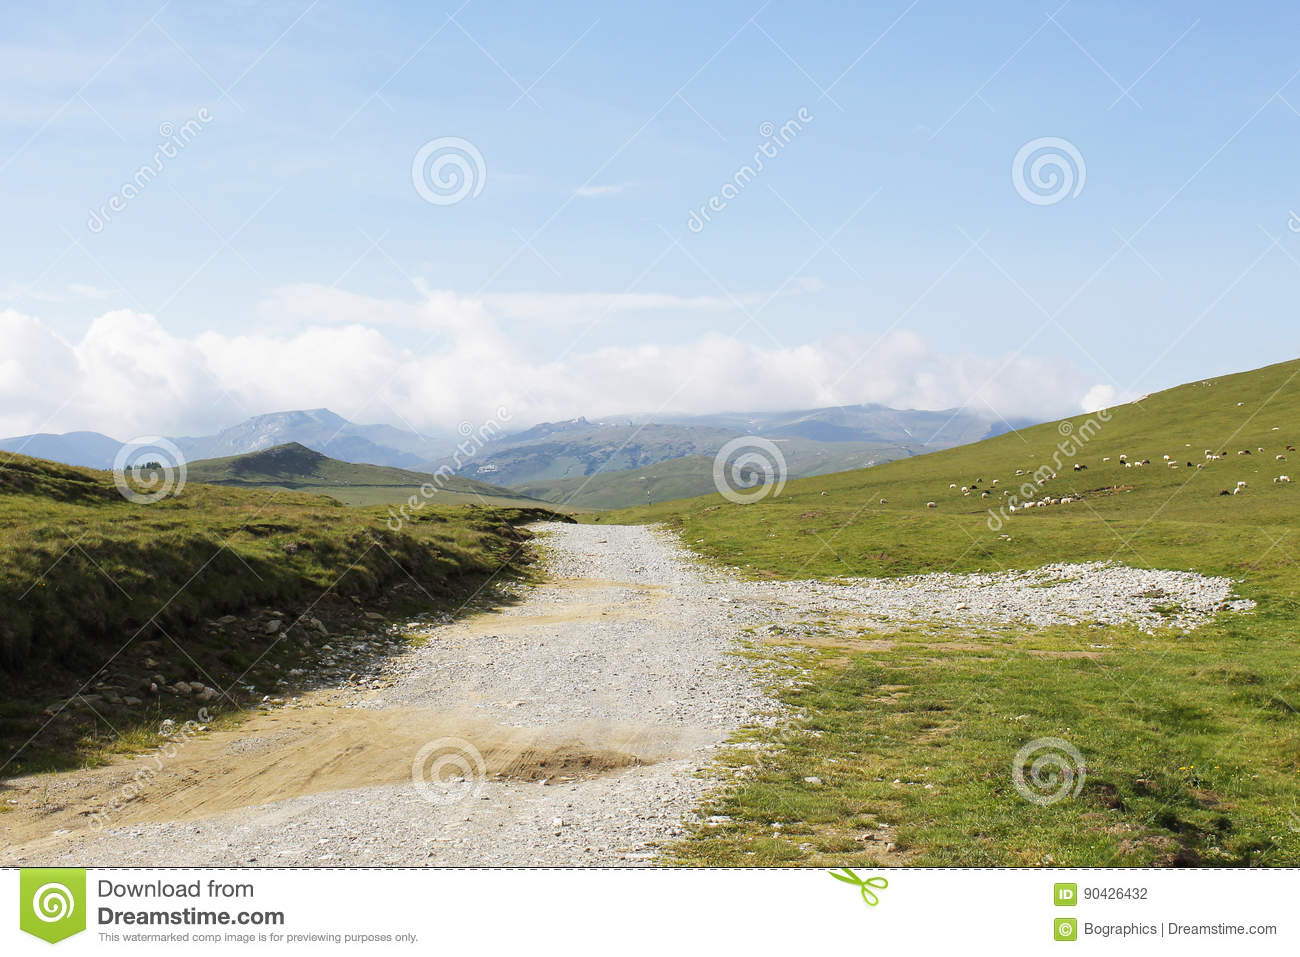 Gravel road on top of mountain